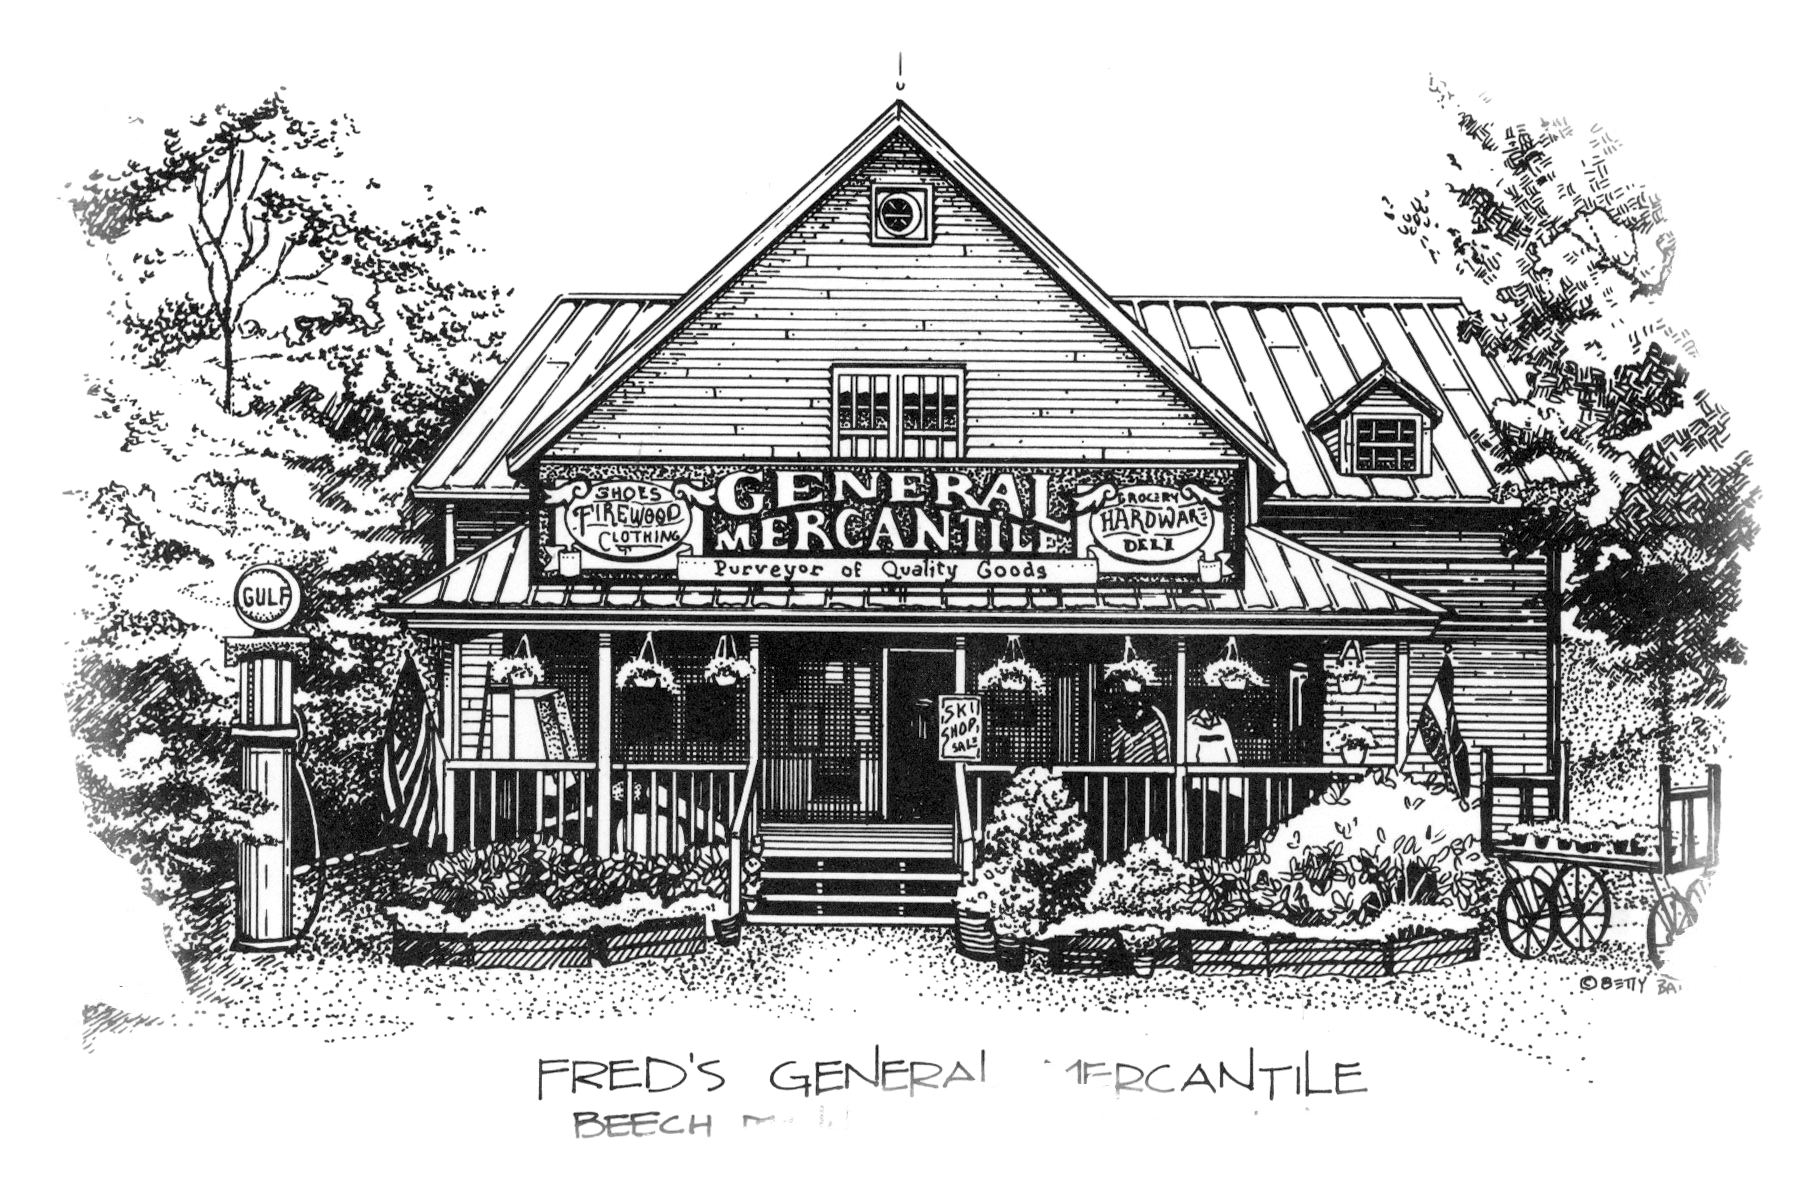 """Custom Note cards sold in famous """"Fred's General Mercantile Store"""" - Beech Mt., NC 1993"""